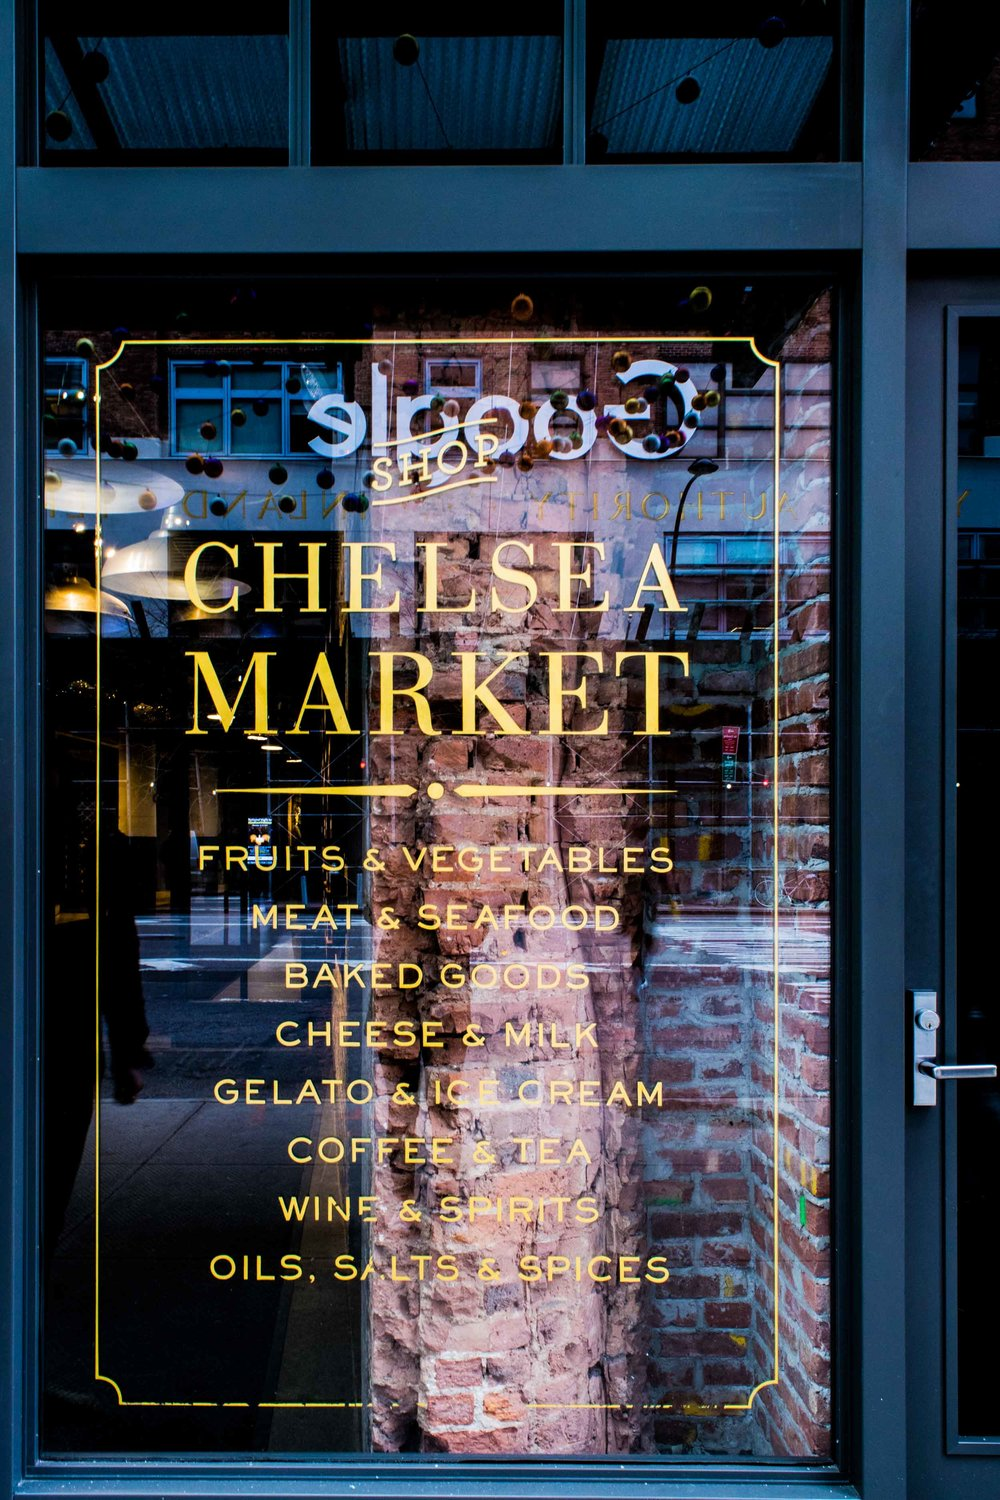 Chelsea Market window listing goods which can be found inside.